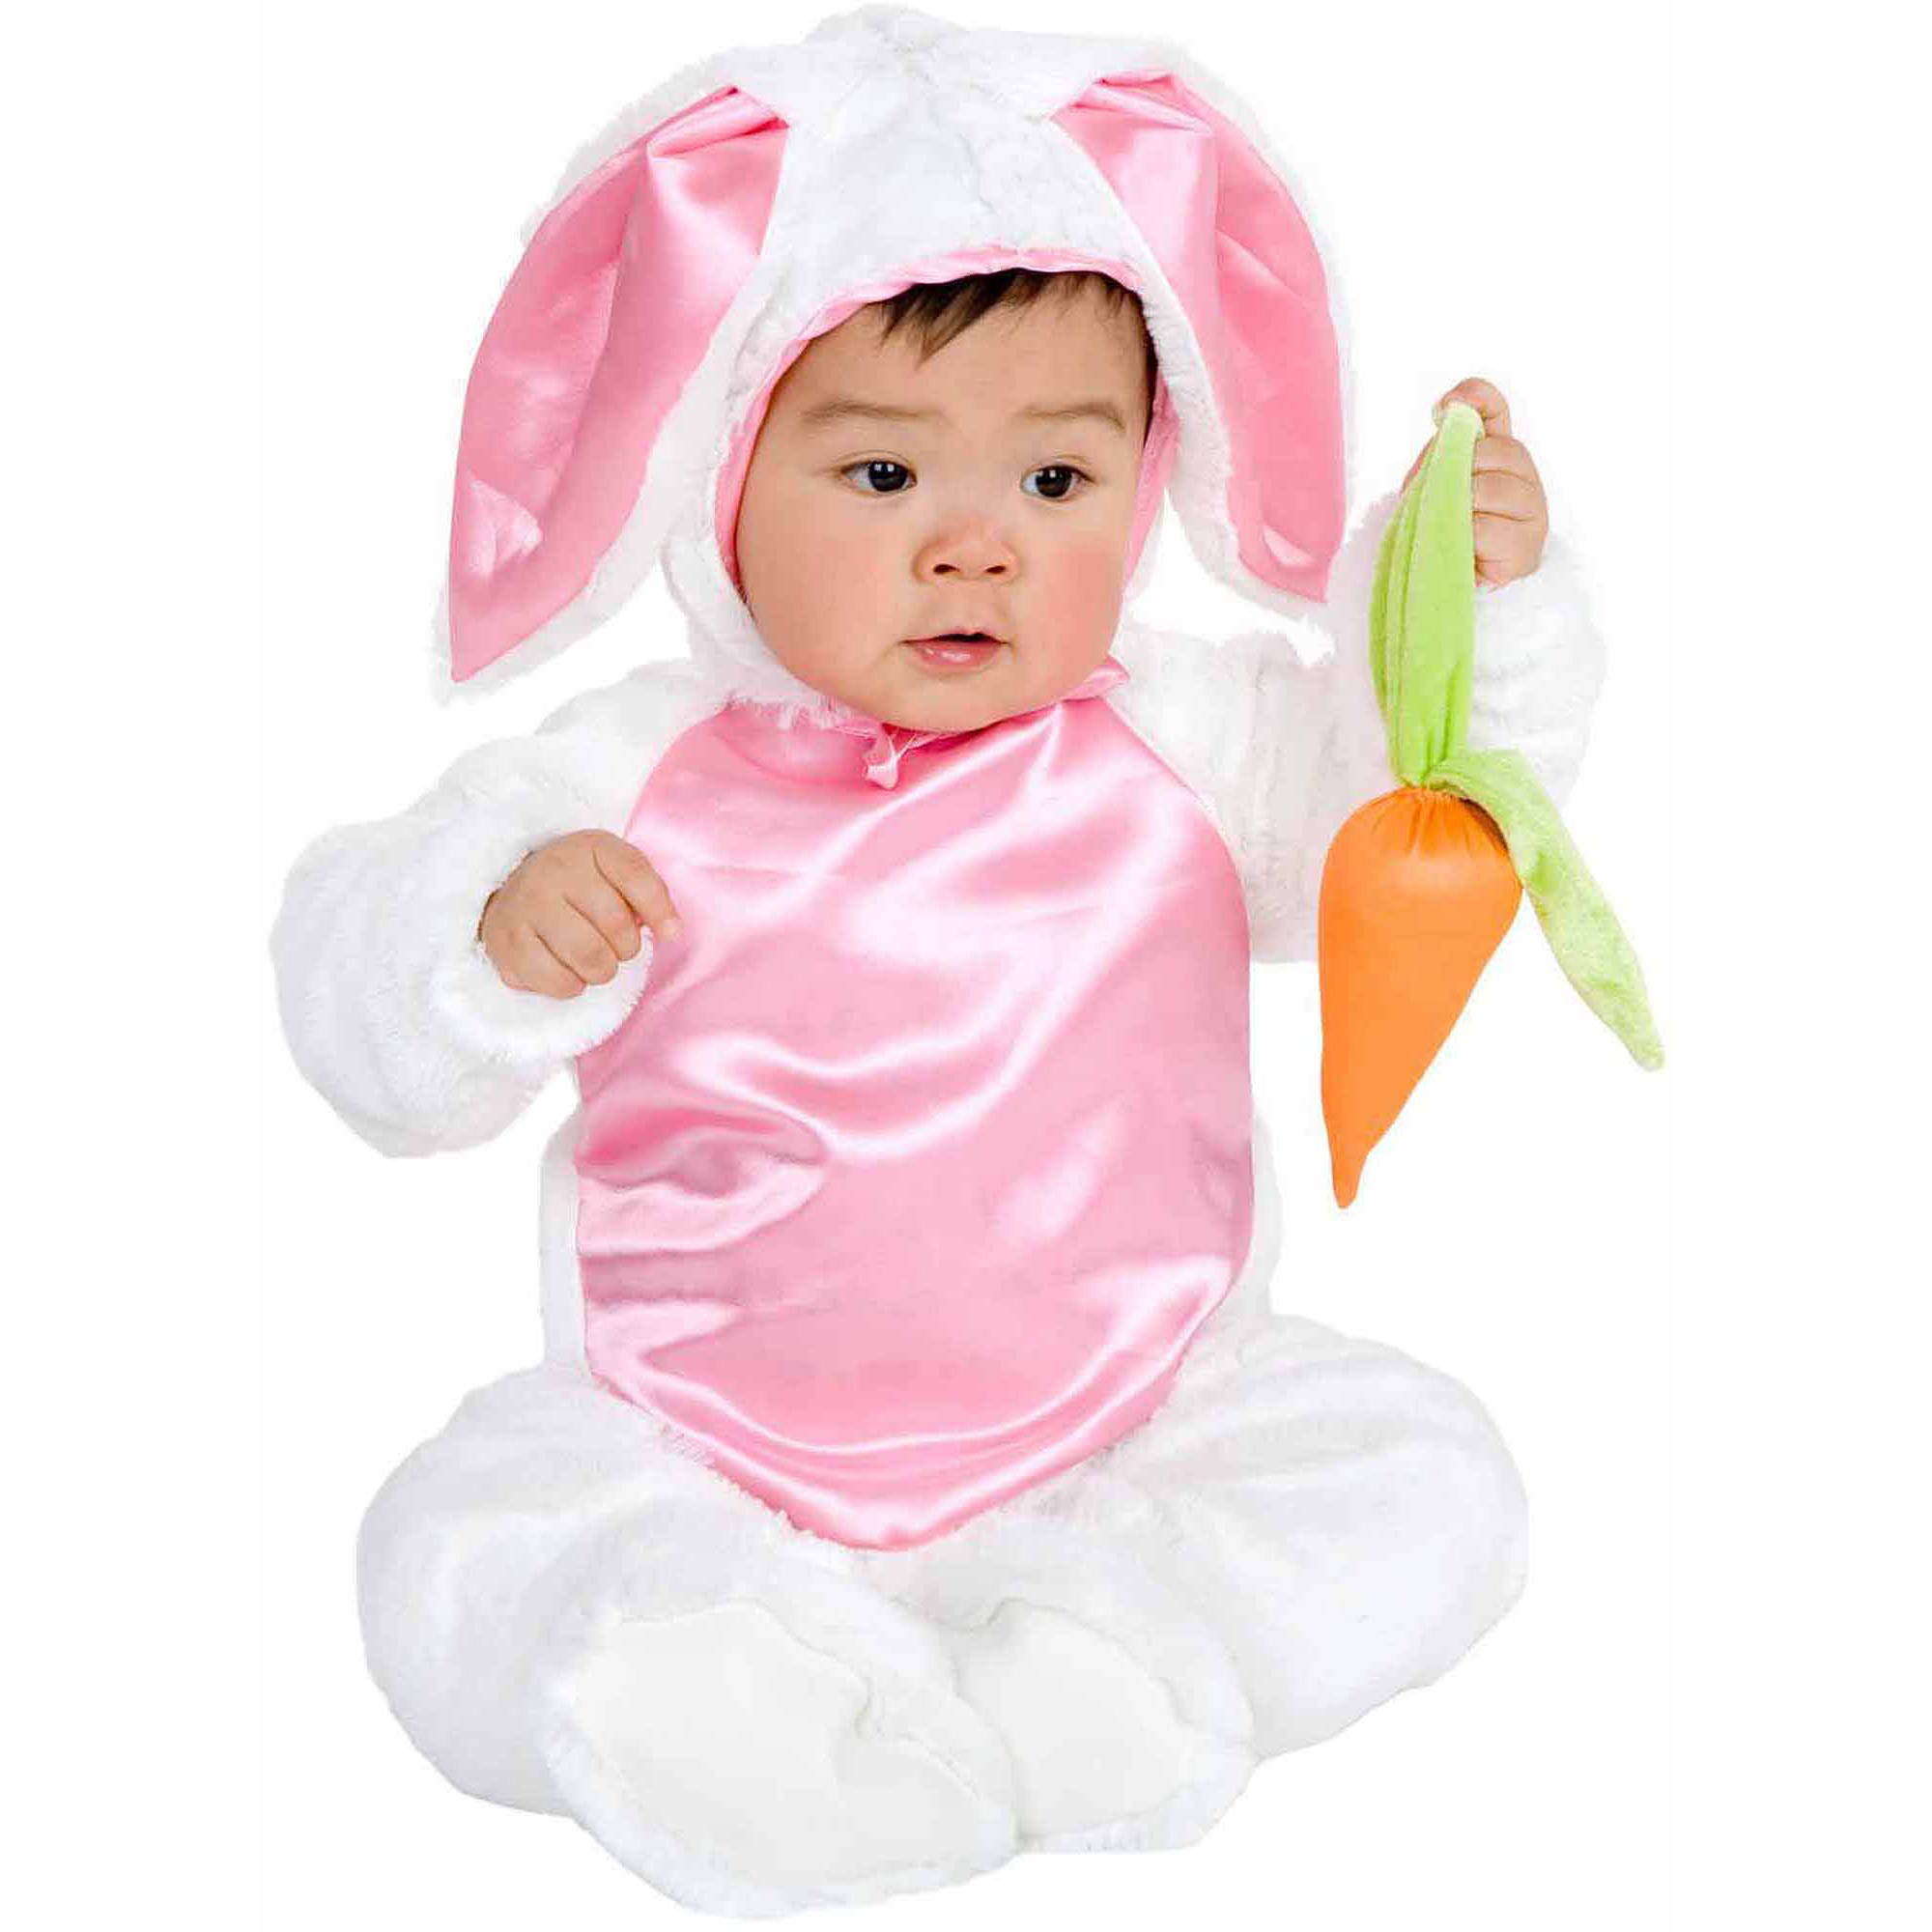 Plush Bunny Infant Halloween Costume